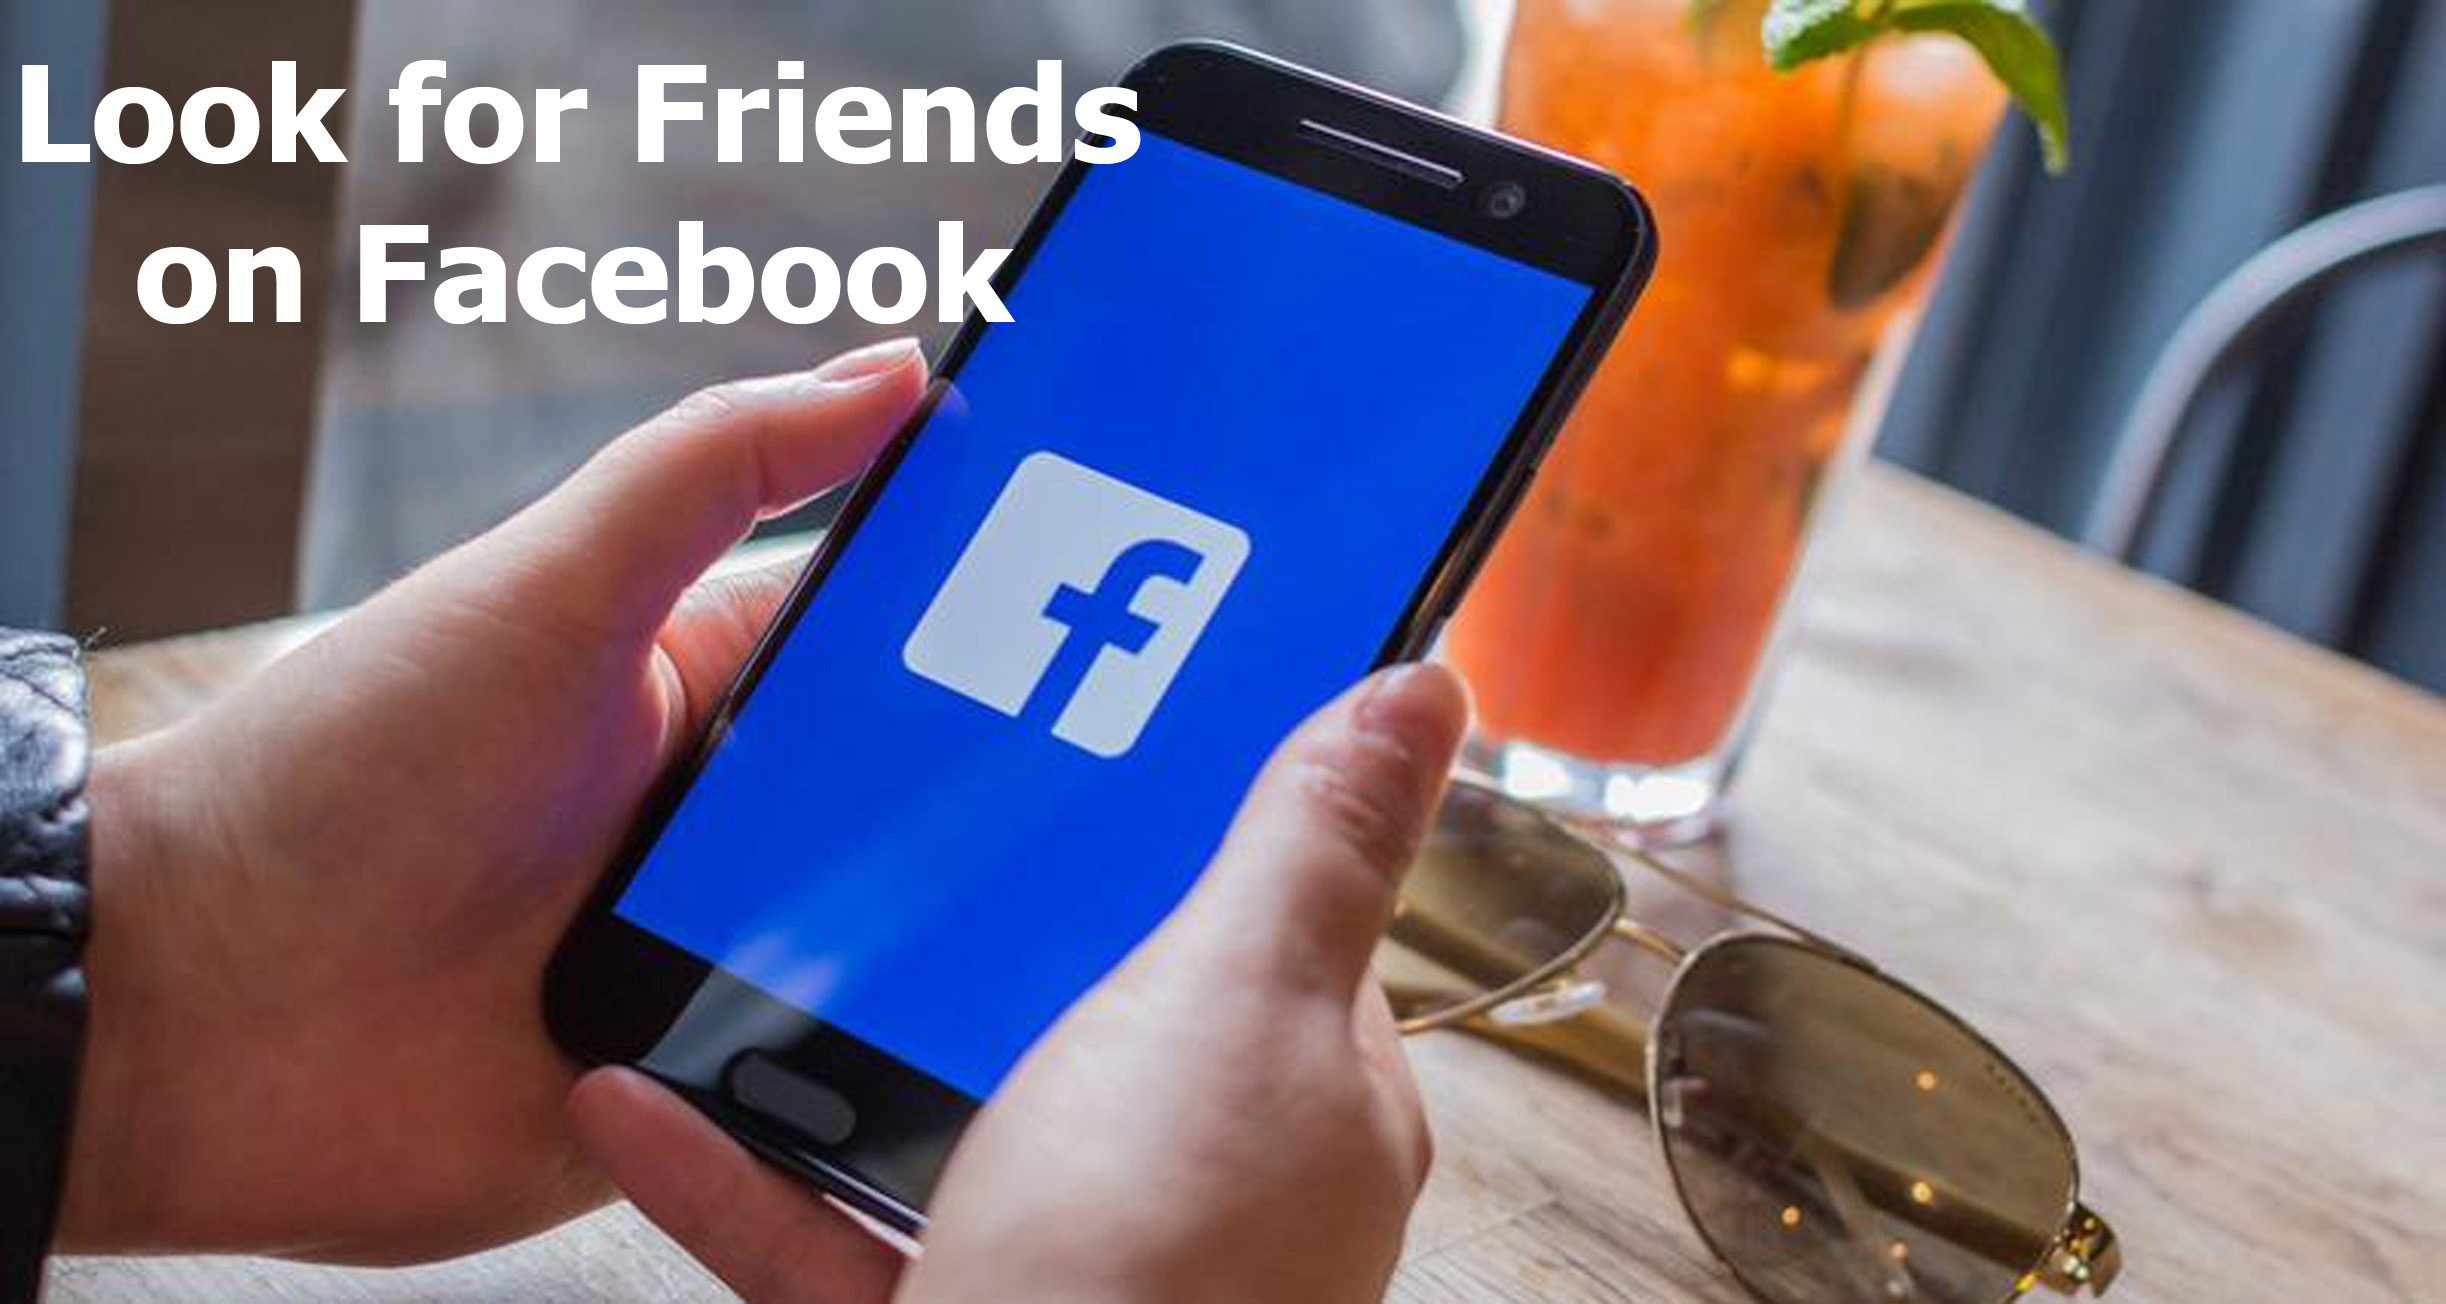 Look for Friends on Facebook – Find Friends on Facebook